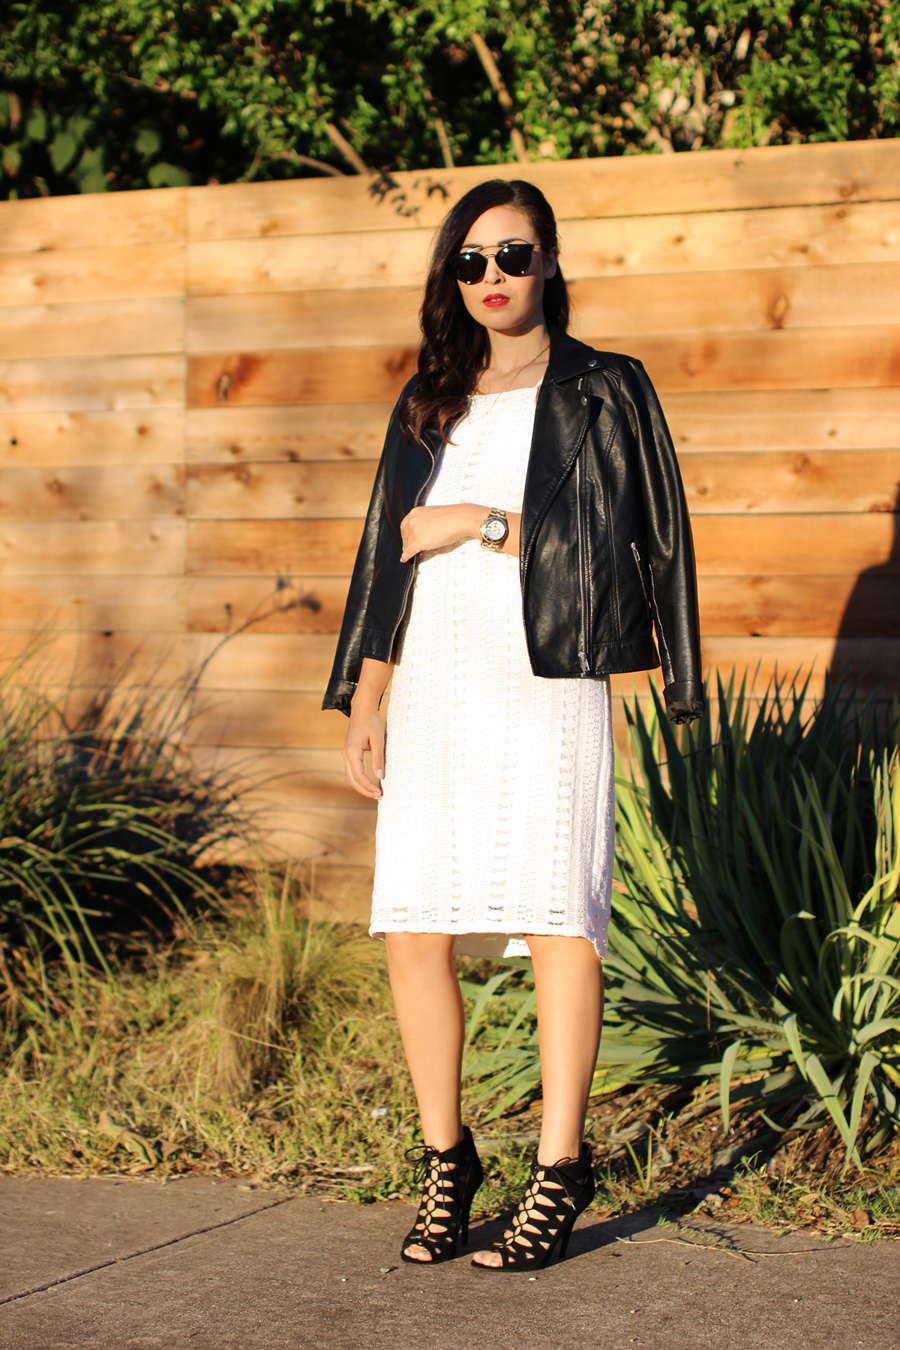 FIXIN-TO-THRILL-WHITE-HALTER-DRESS-STRAPPY-HEELS-LEATHER-TREND-FALL-OCTOBER-ATX-AUSTIN-STYLE-BLOG-FW15-TRENDY-CHIC-GLAM-TEXAS